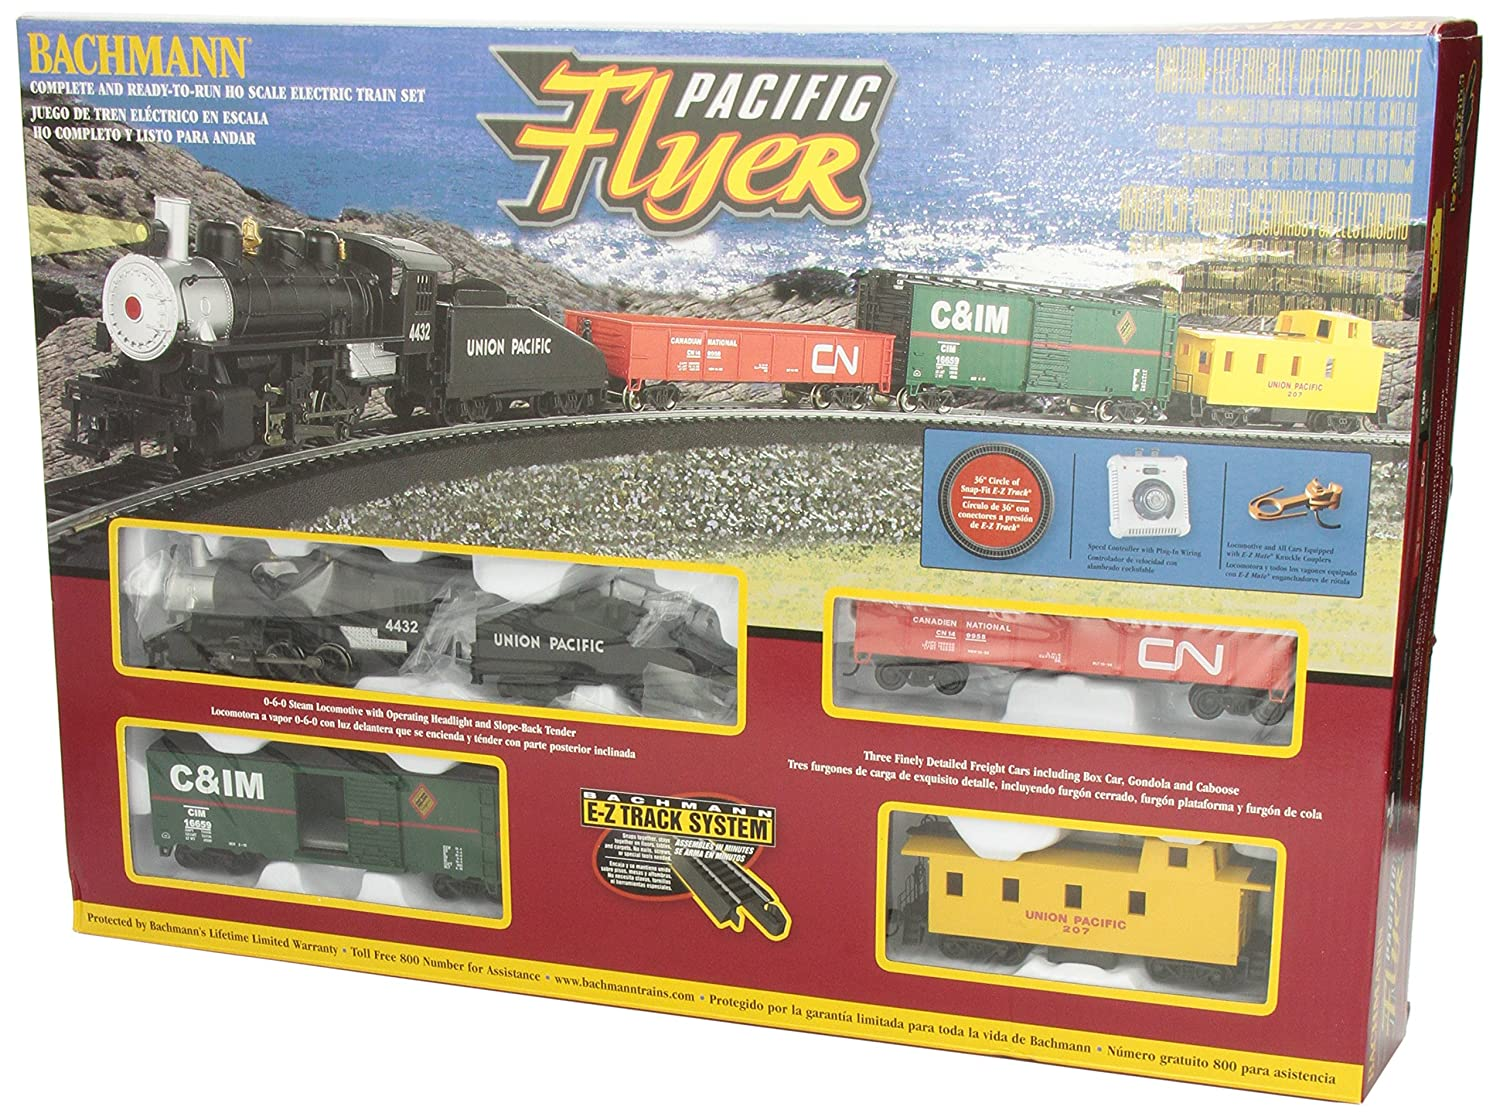 Amazon.com: Bachmann Trains Pacific Flyer Ready-to-Run HO Scale Train Set:  Toys & Games